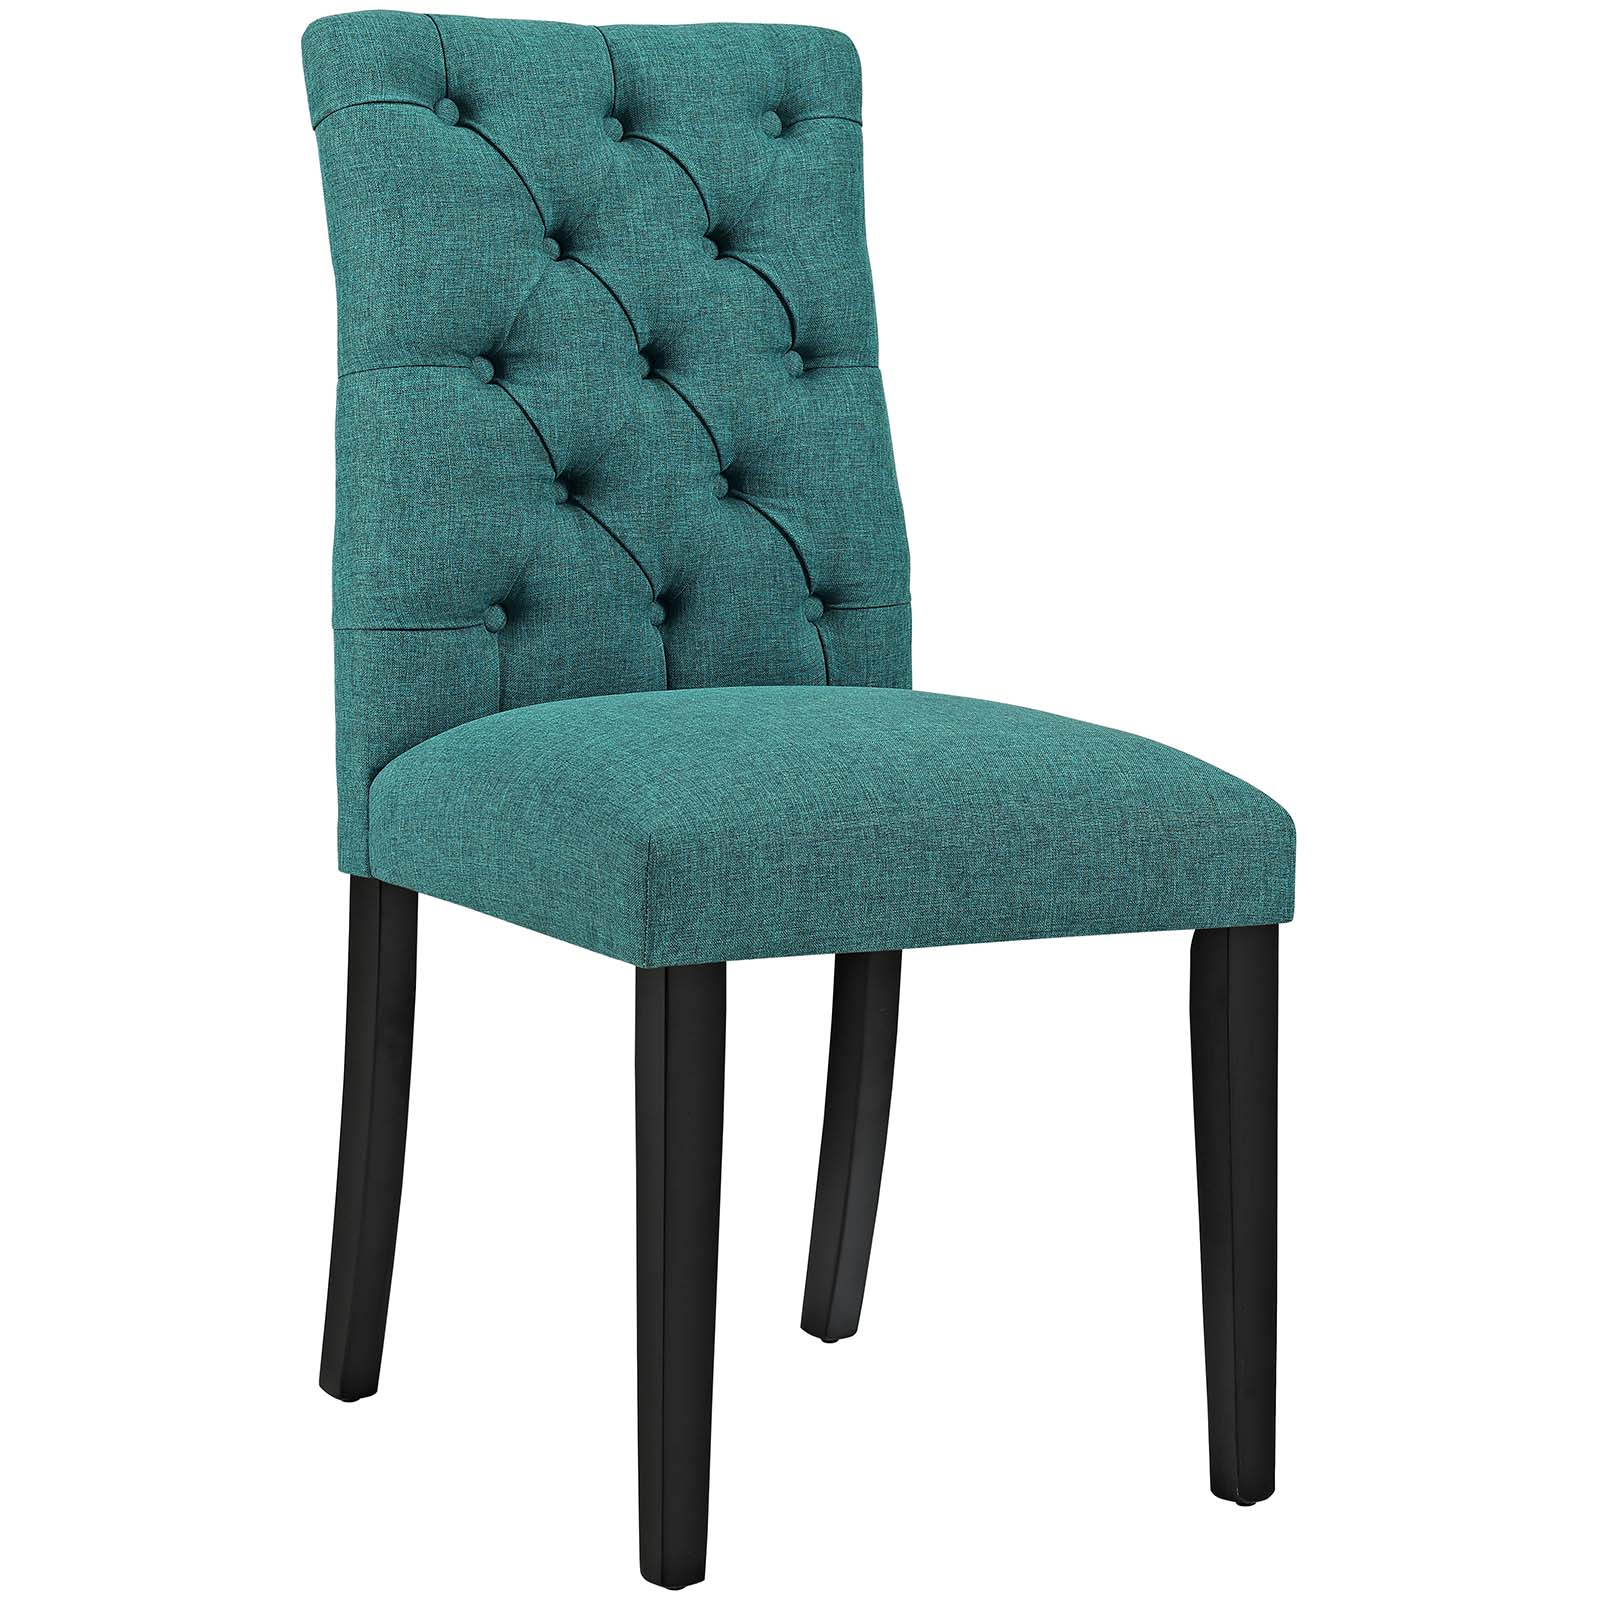 Modern Contemporary Urban Design Kitchen Room Dining Chair, Blue, Fabric